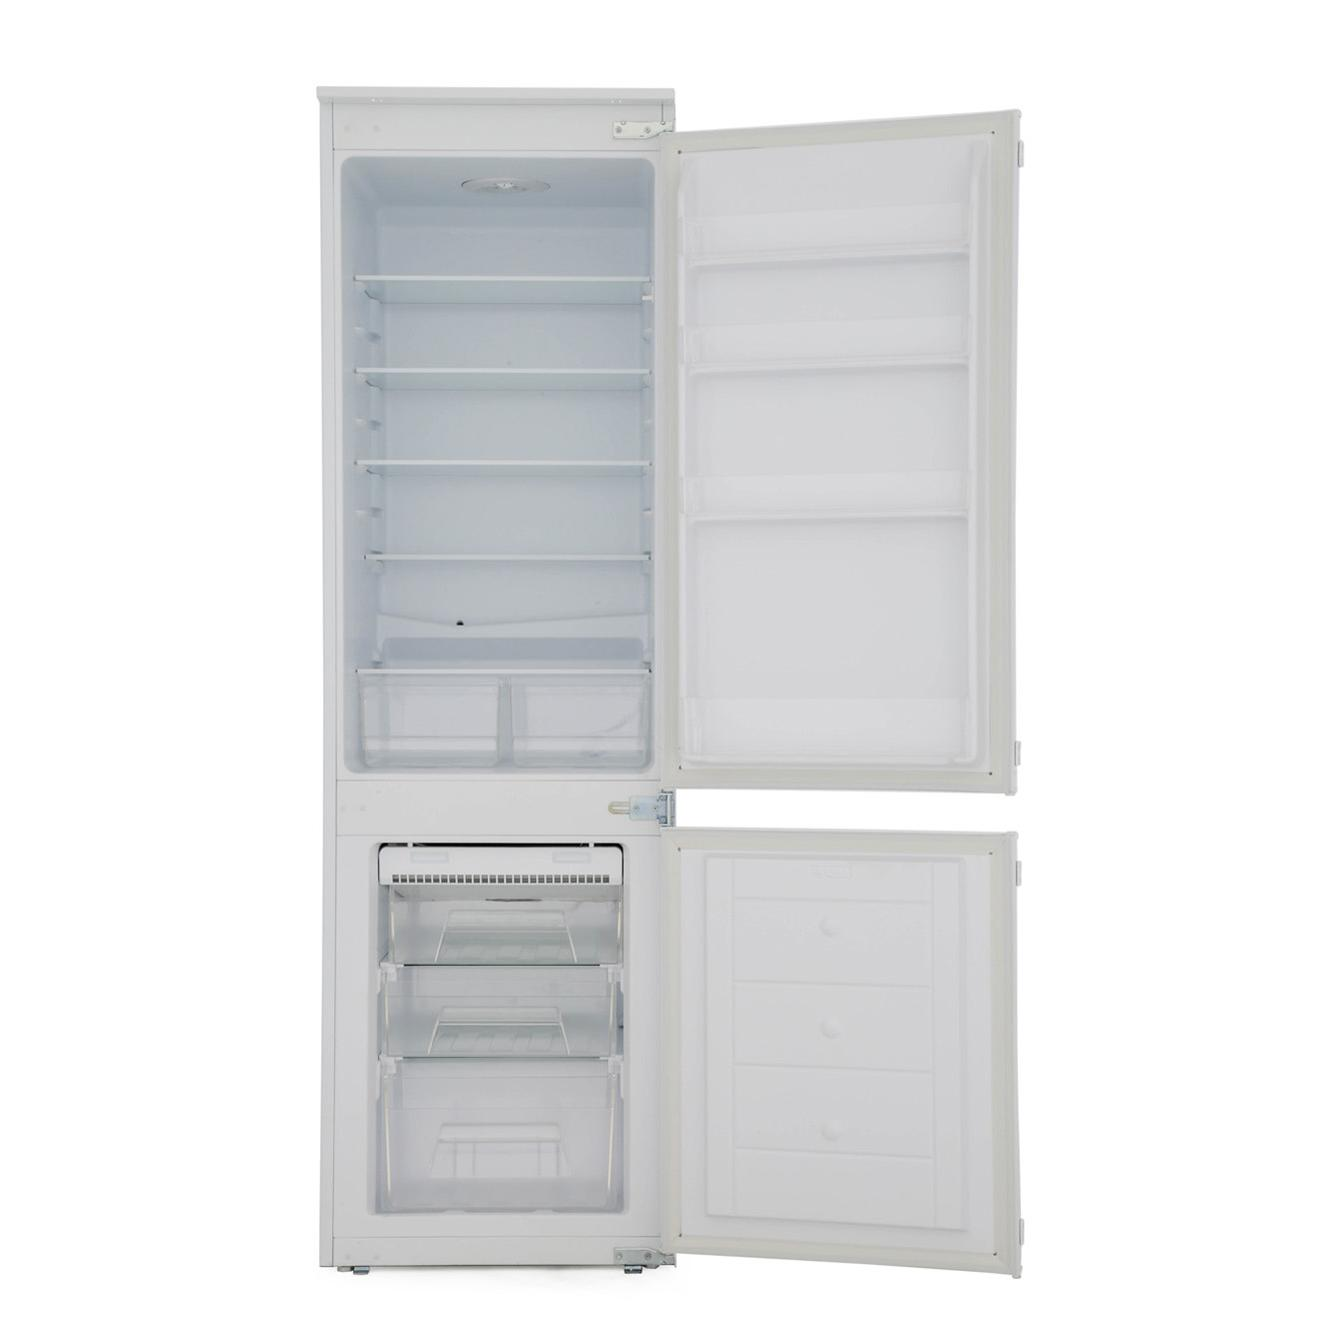 Culina UBBIFF70FFA Integrated Fridge Freezer